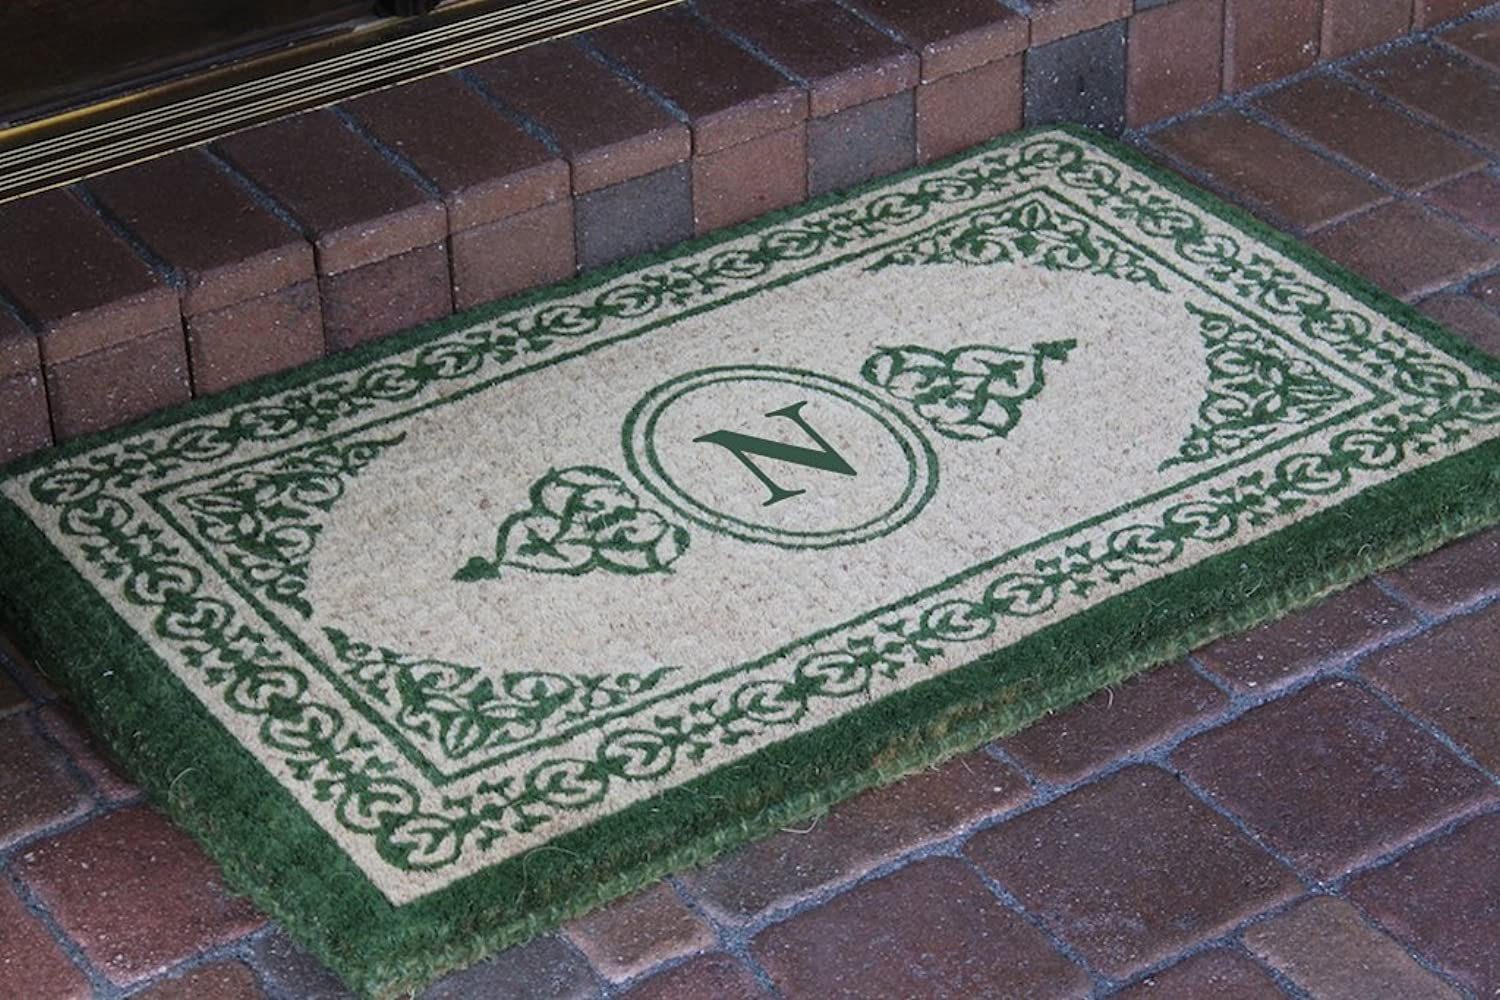 A1 HOME COLLECTIONS Hand-Crafted Green Filigree Decorative Border Extra-Thick Doormat-A1HOME200060-N